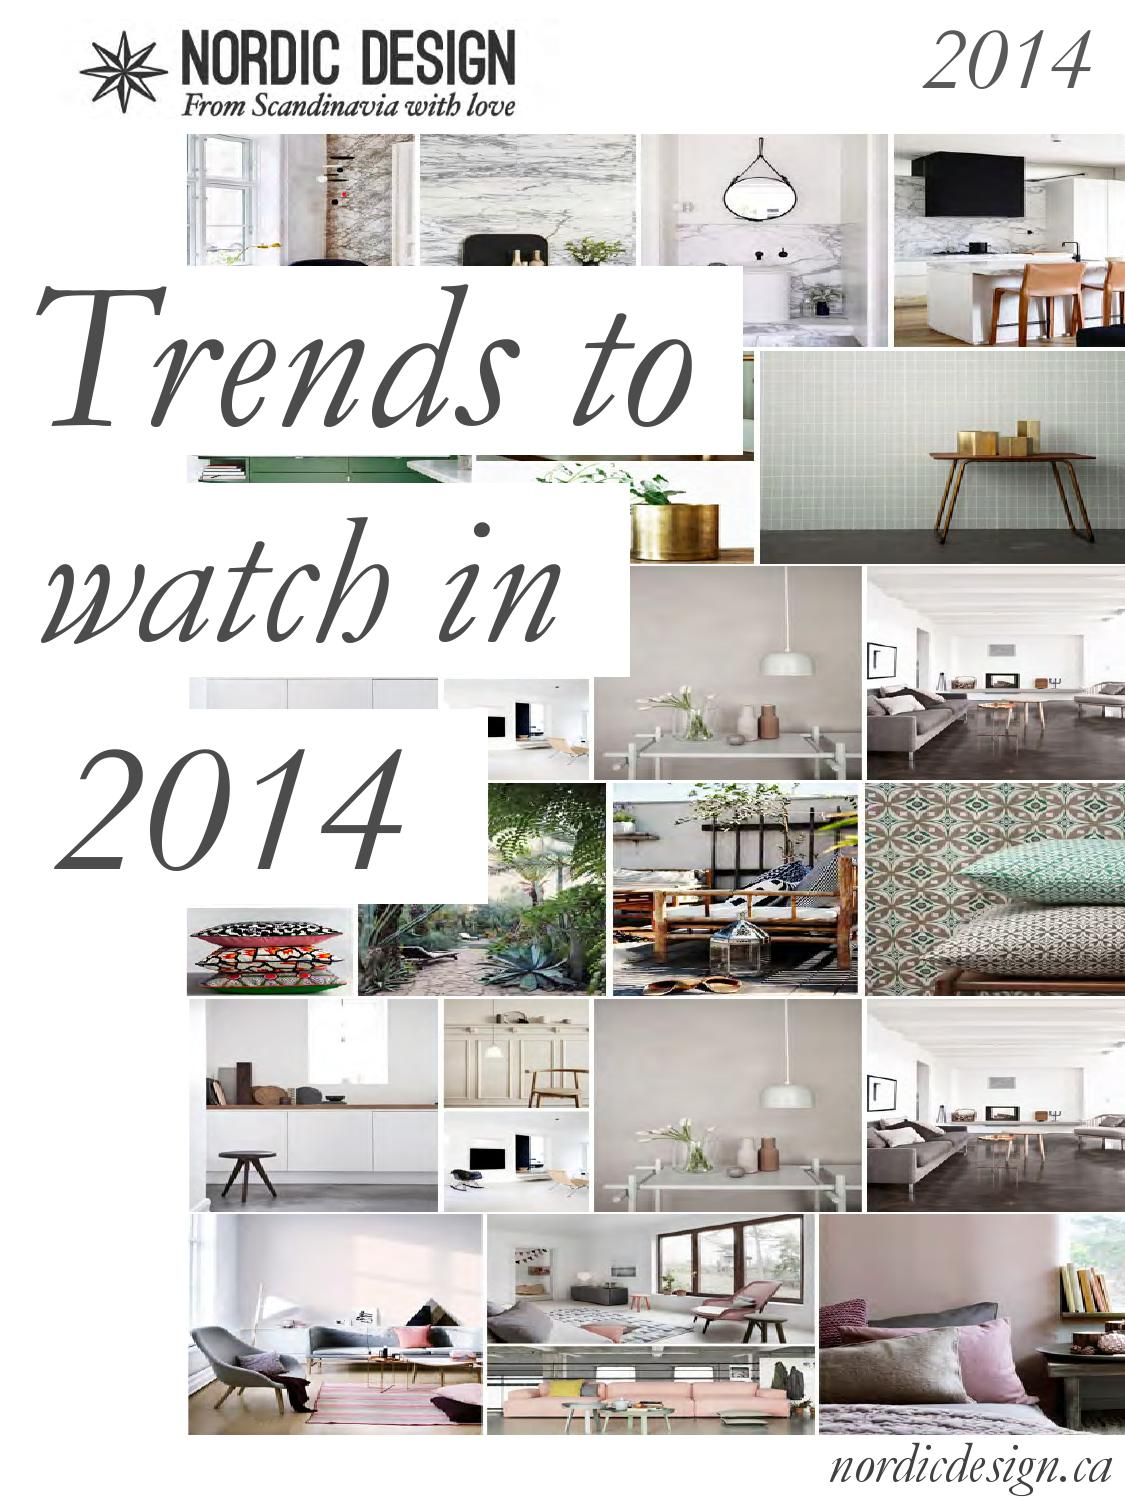 Issuu Home Decorating Trends 2014 By Nordic Design Interiors Inside Ideas Interiors design about Everything [magnanprojects.com]